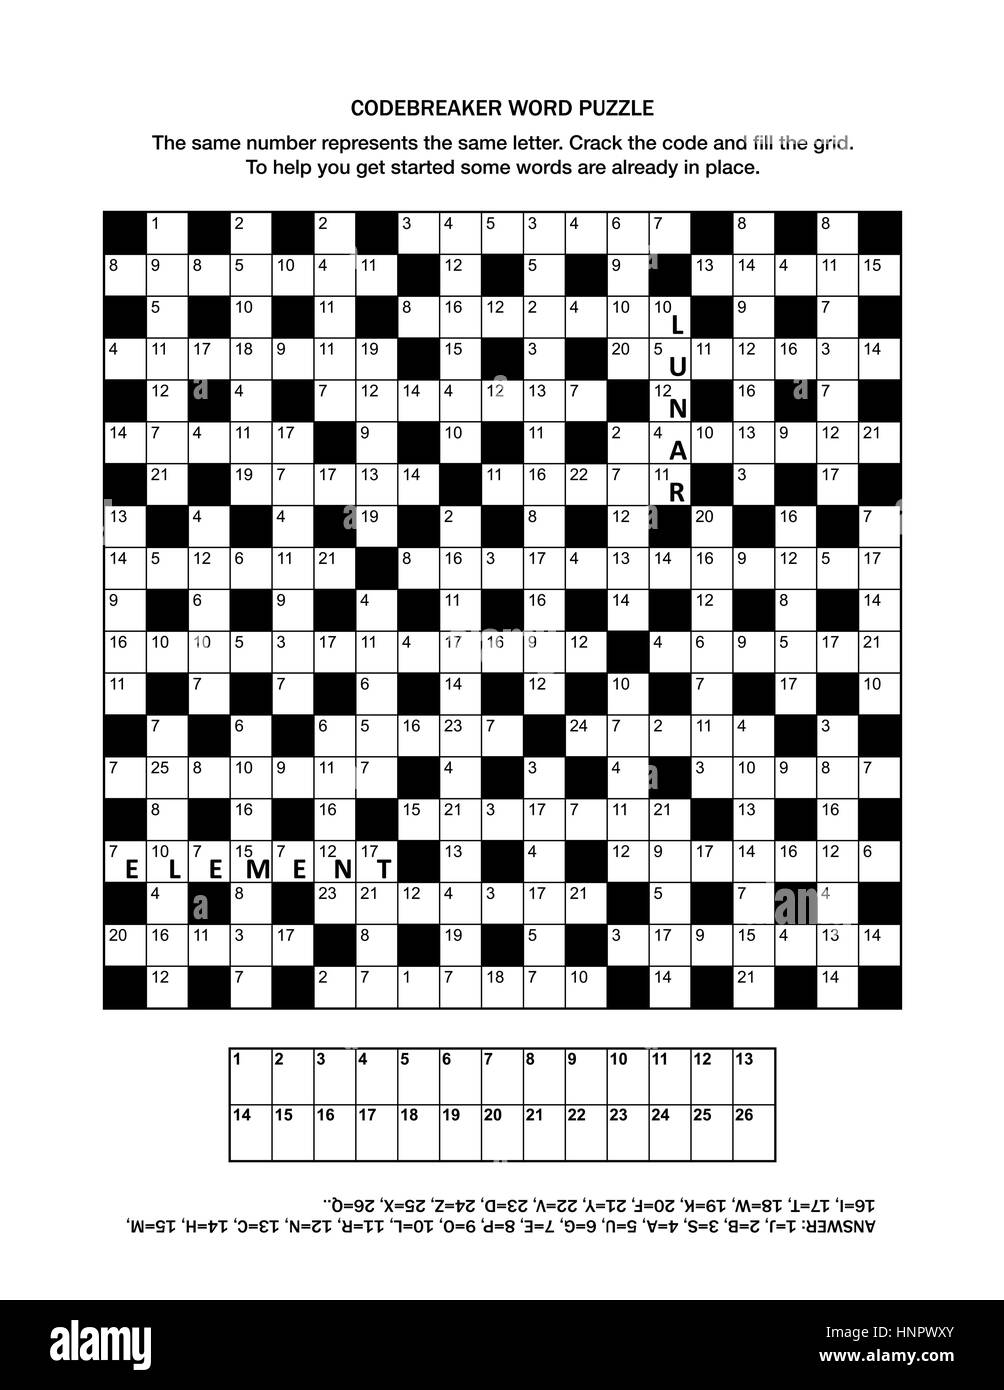 Puzzle page with codebreaker (or codeword, or code cracker) word